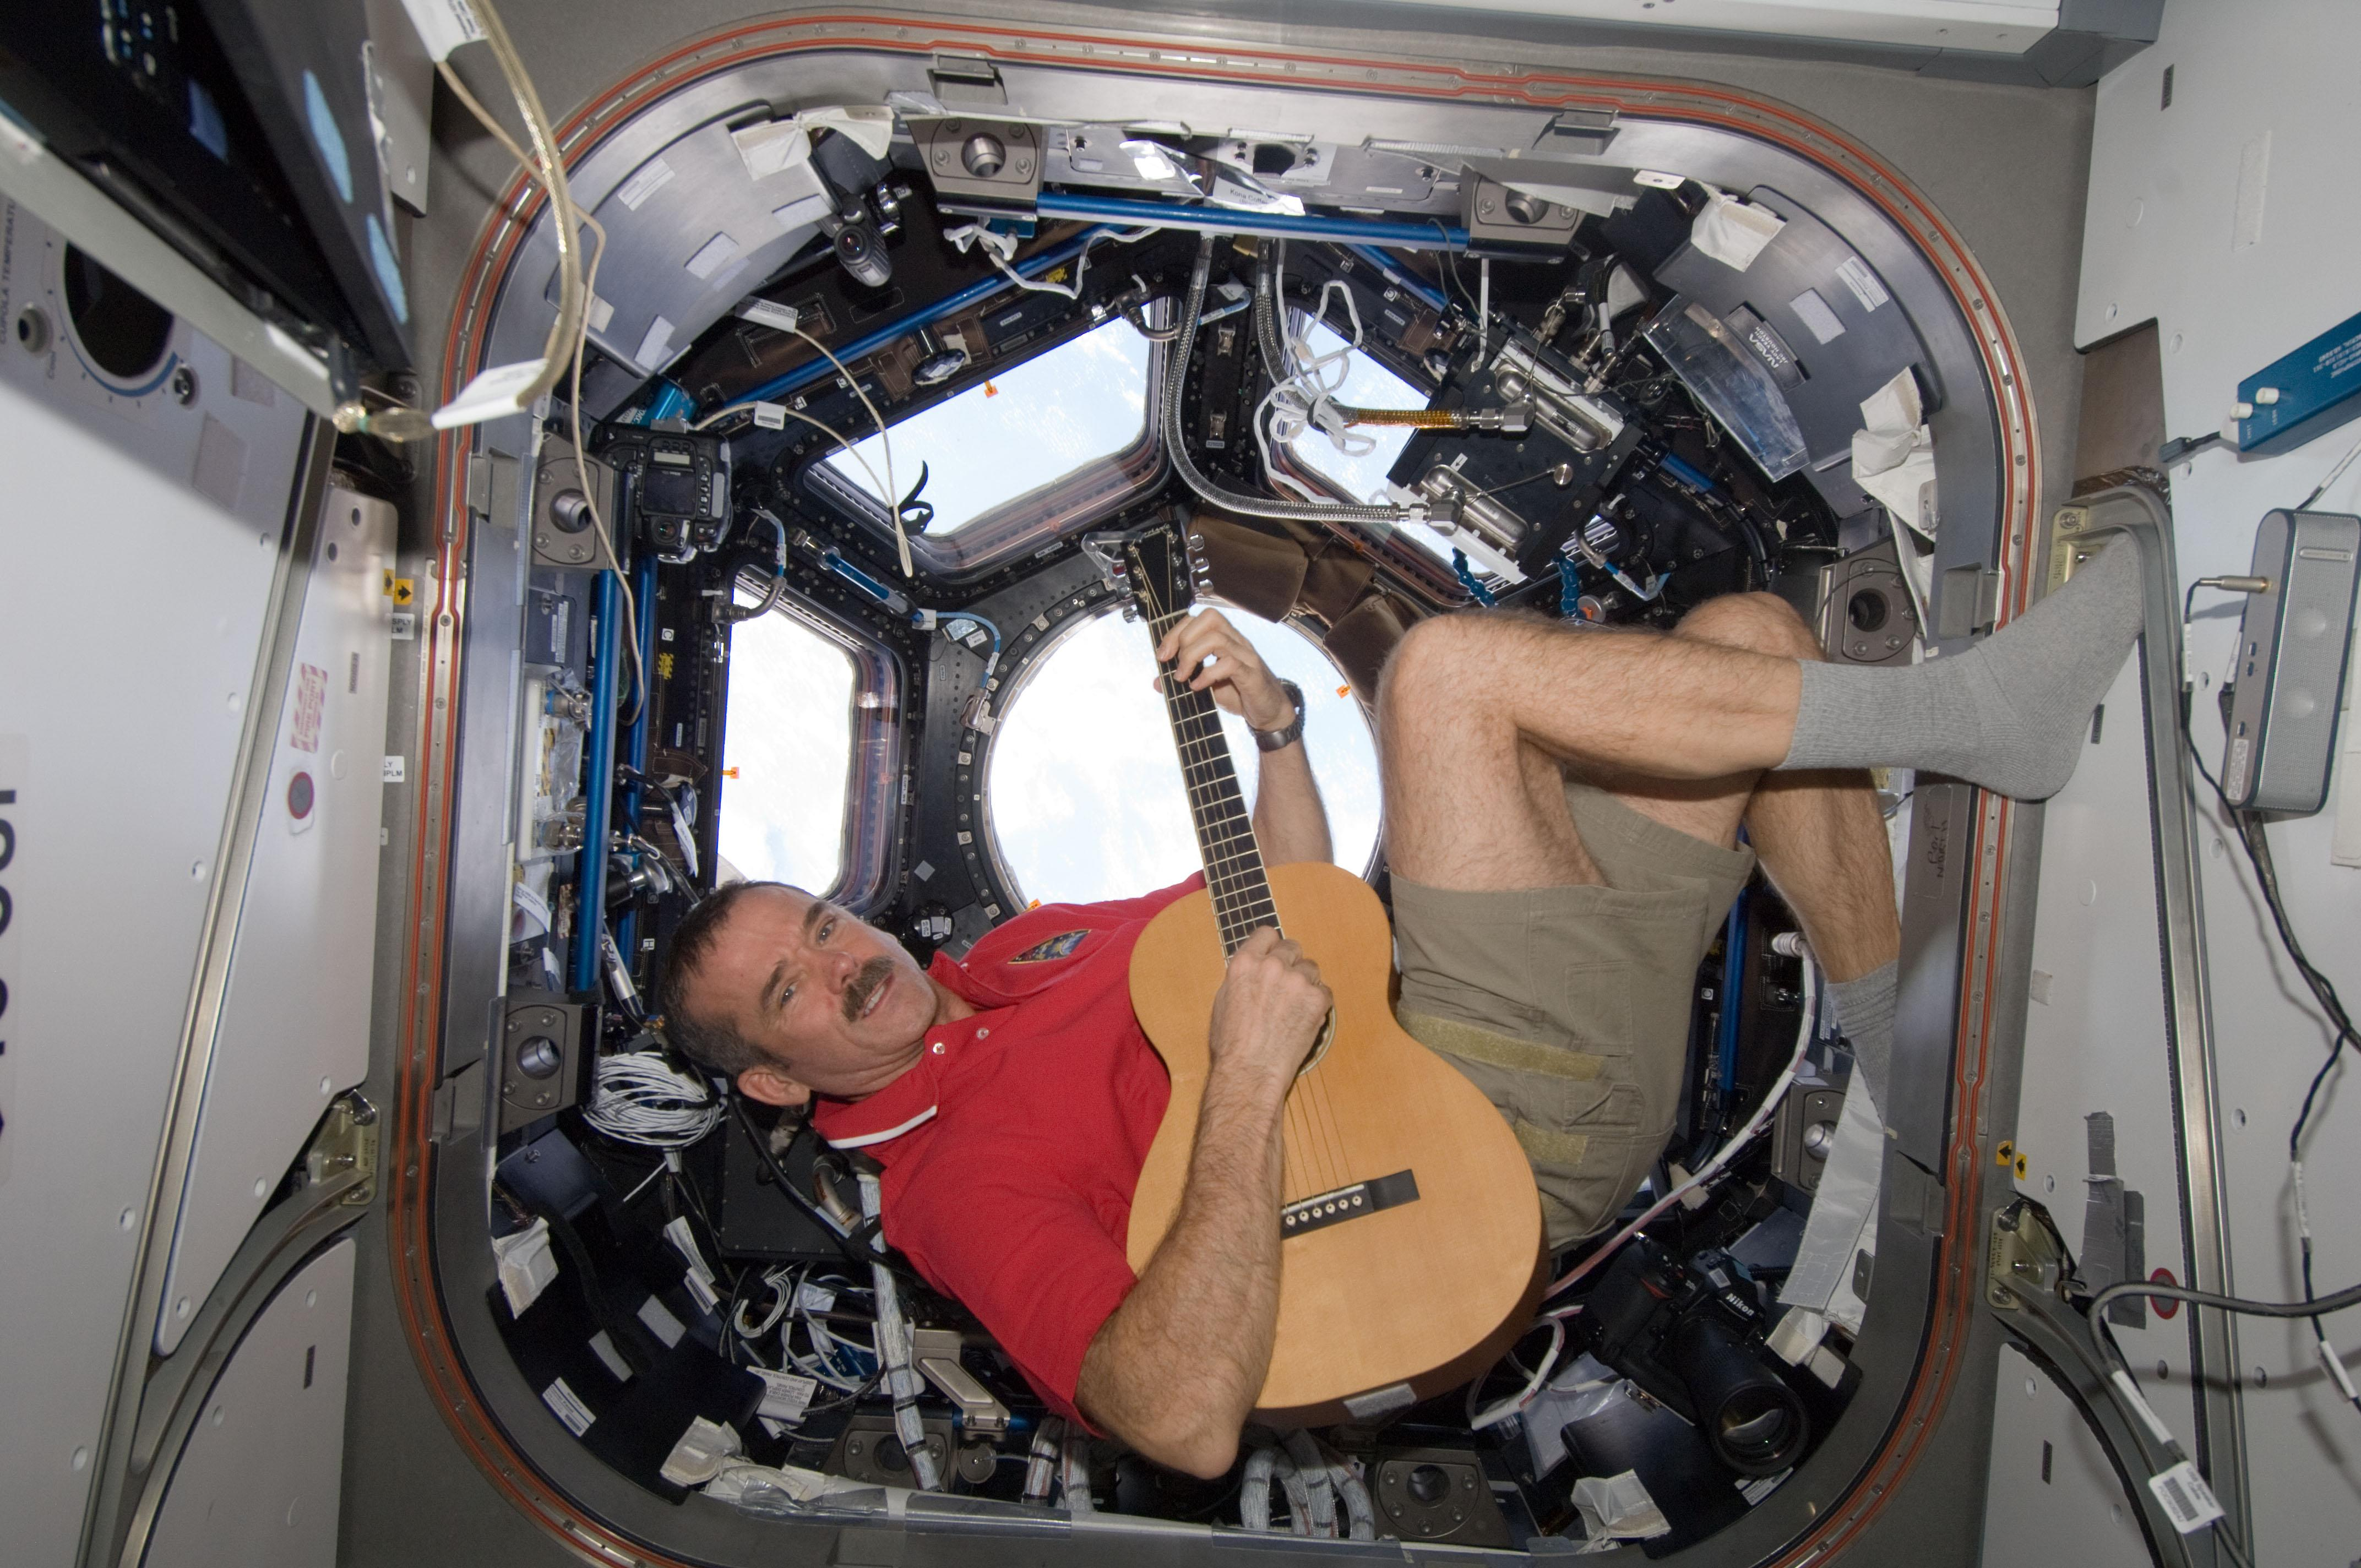 Astronaut Chris Hadfield debuts first album recorded in space